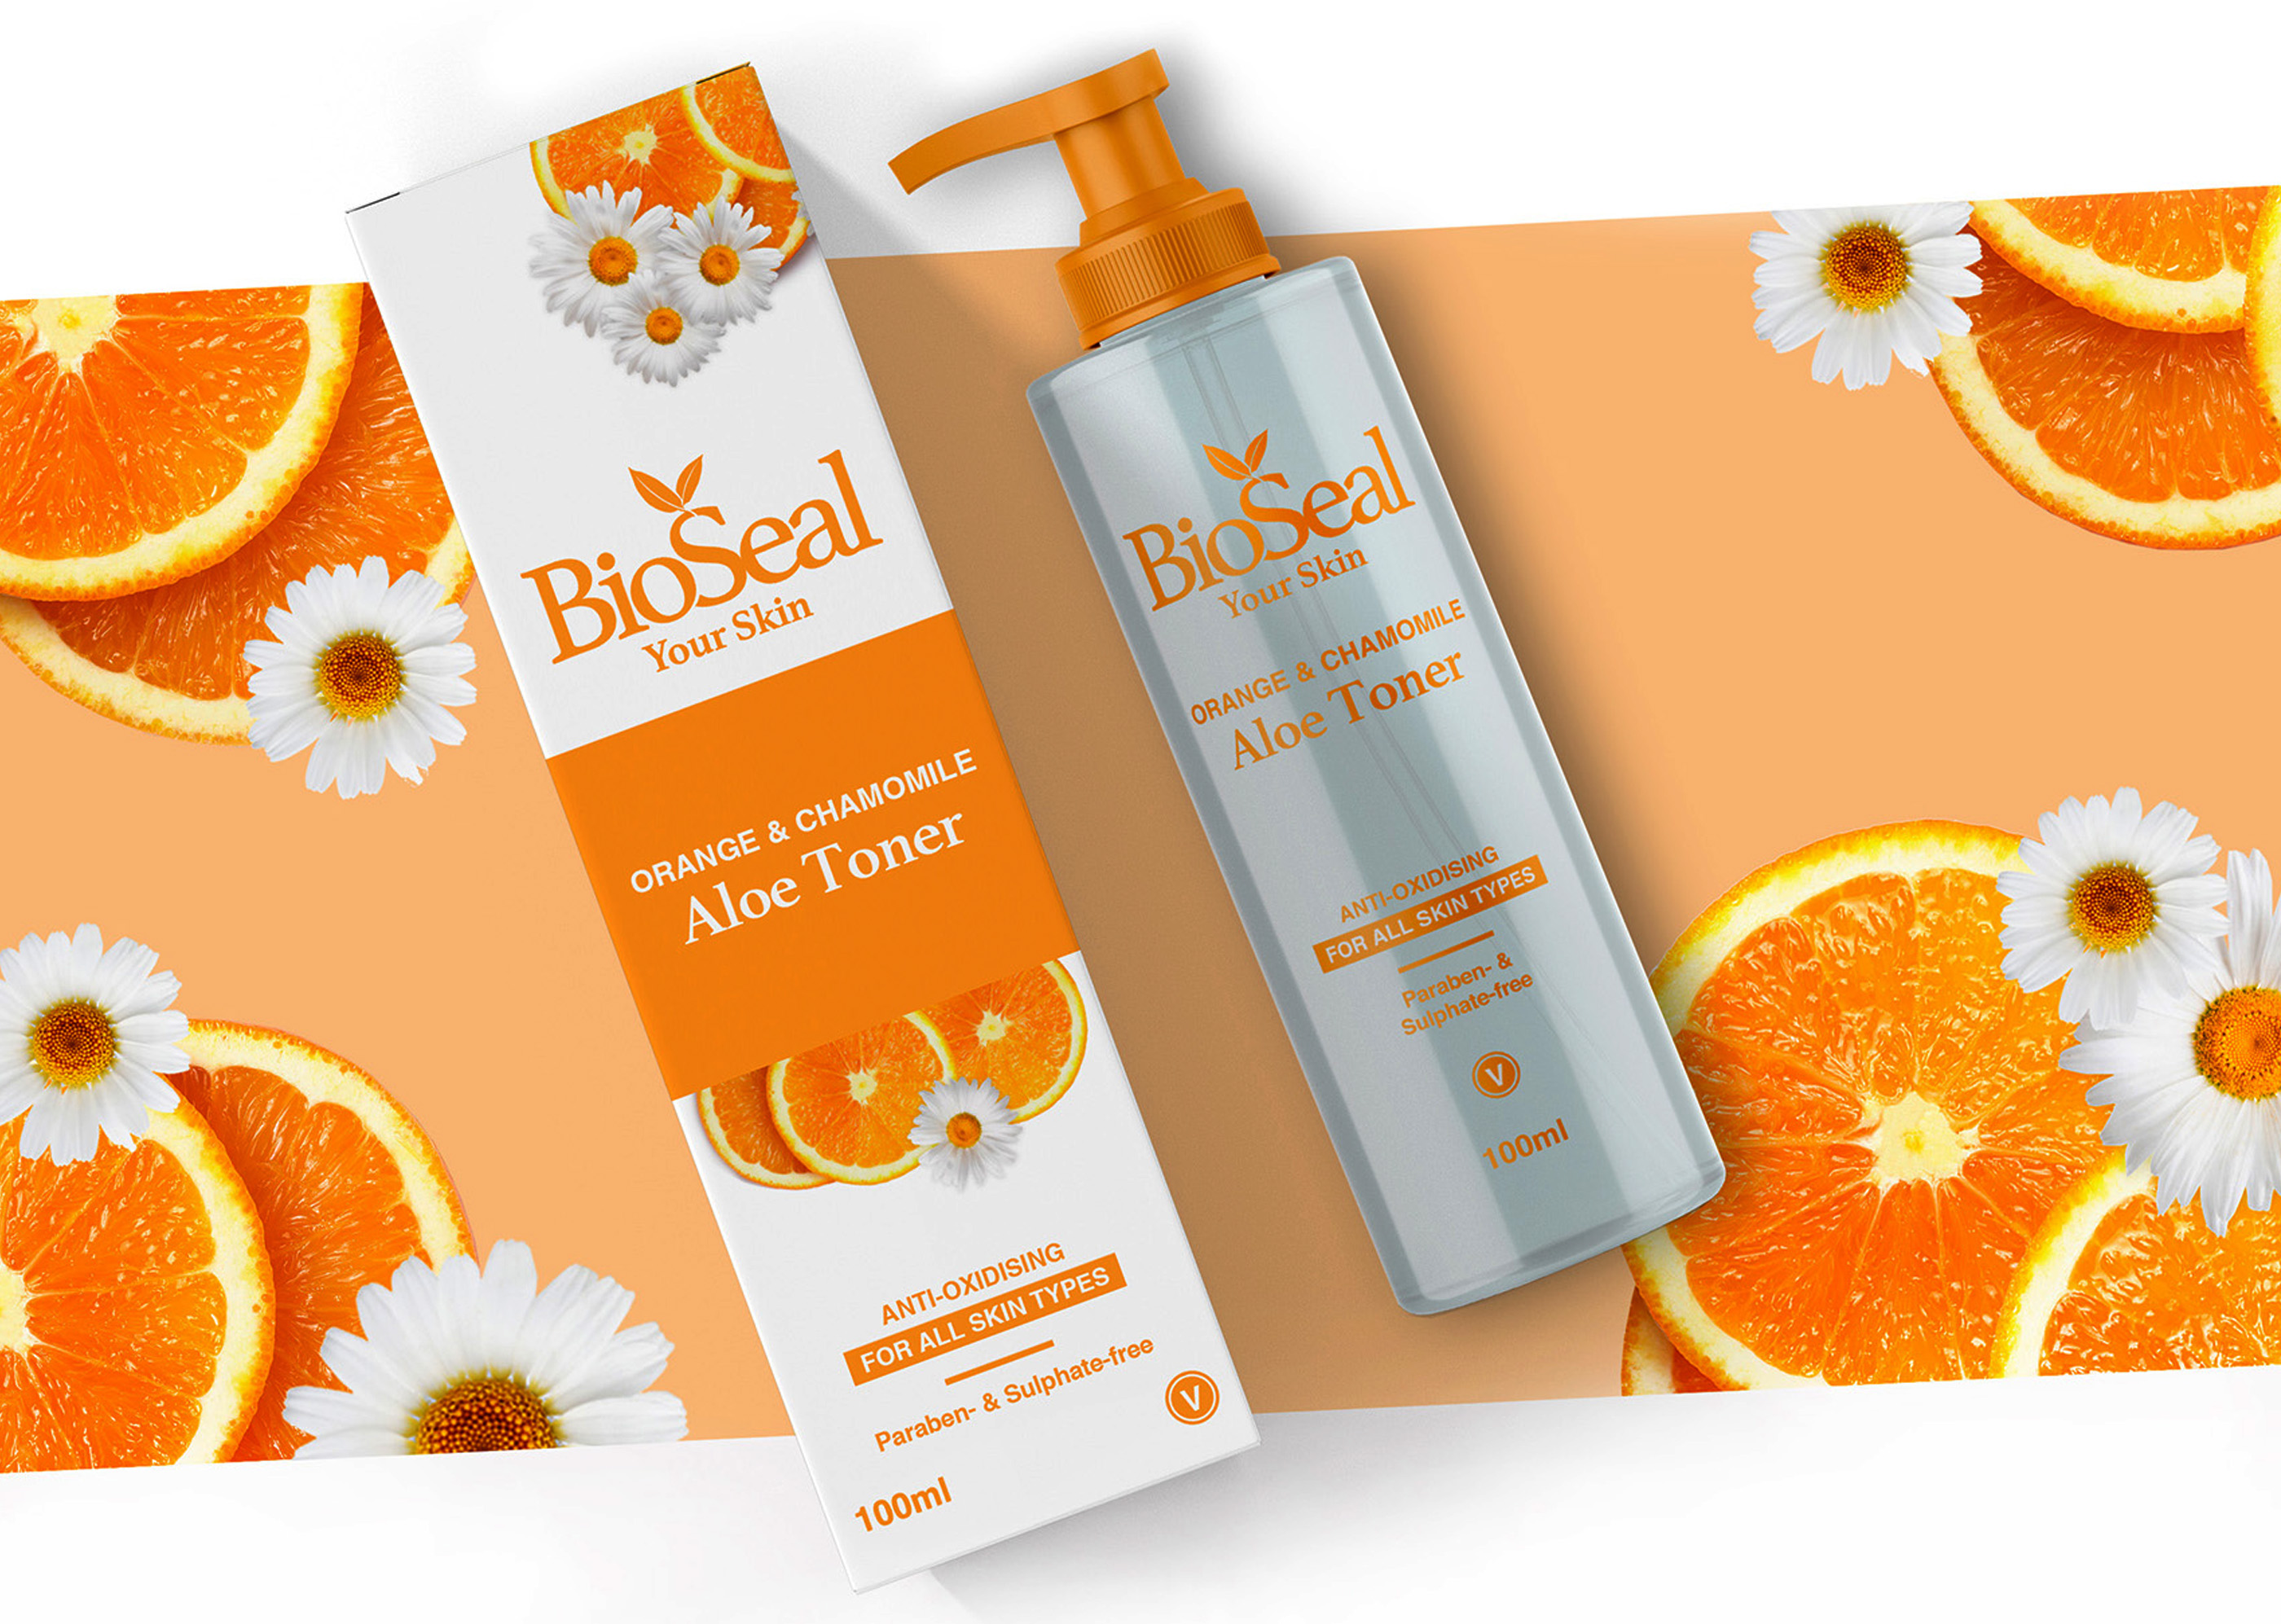 BioSeal-Cosmetic-Face-Wash-Toner-Packaging-Graphic-Design-by-Agent-Orange-Design.jpg